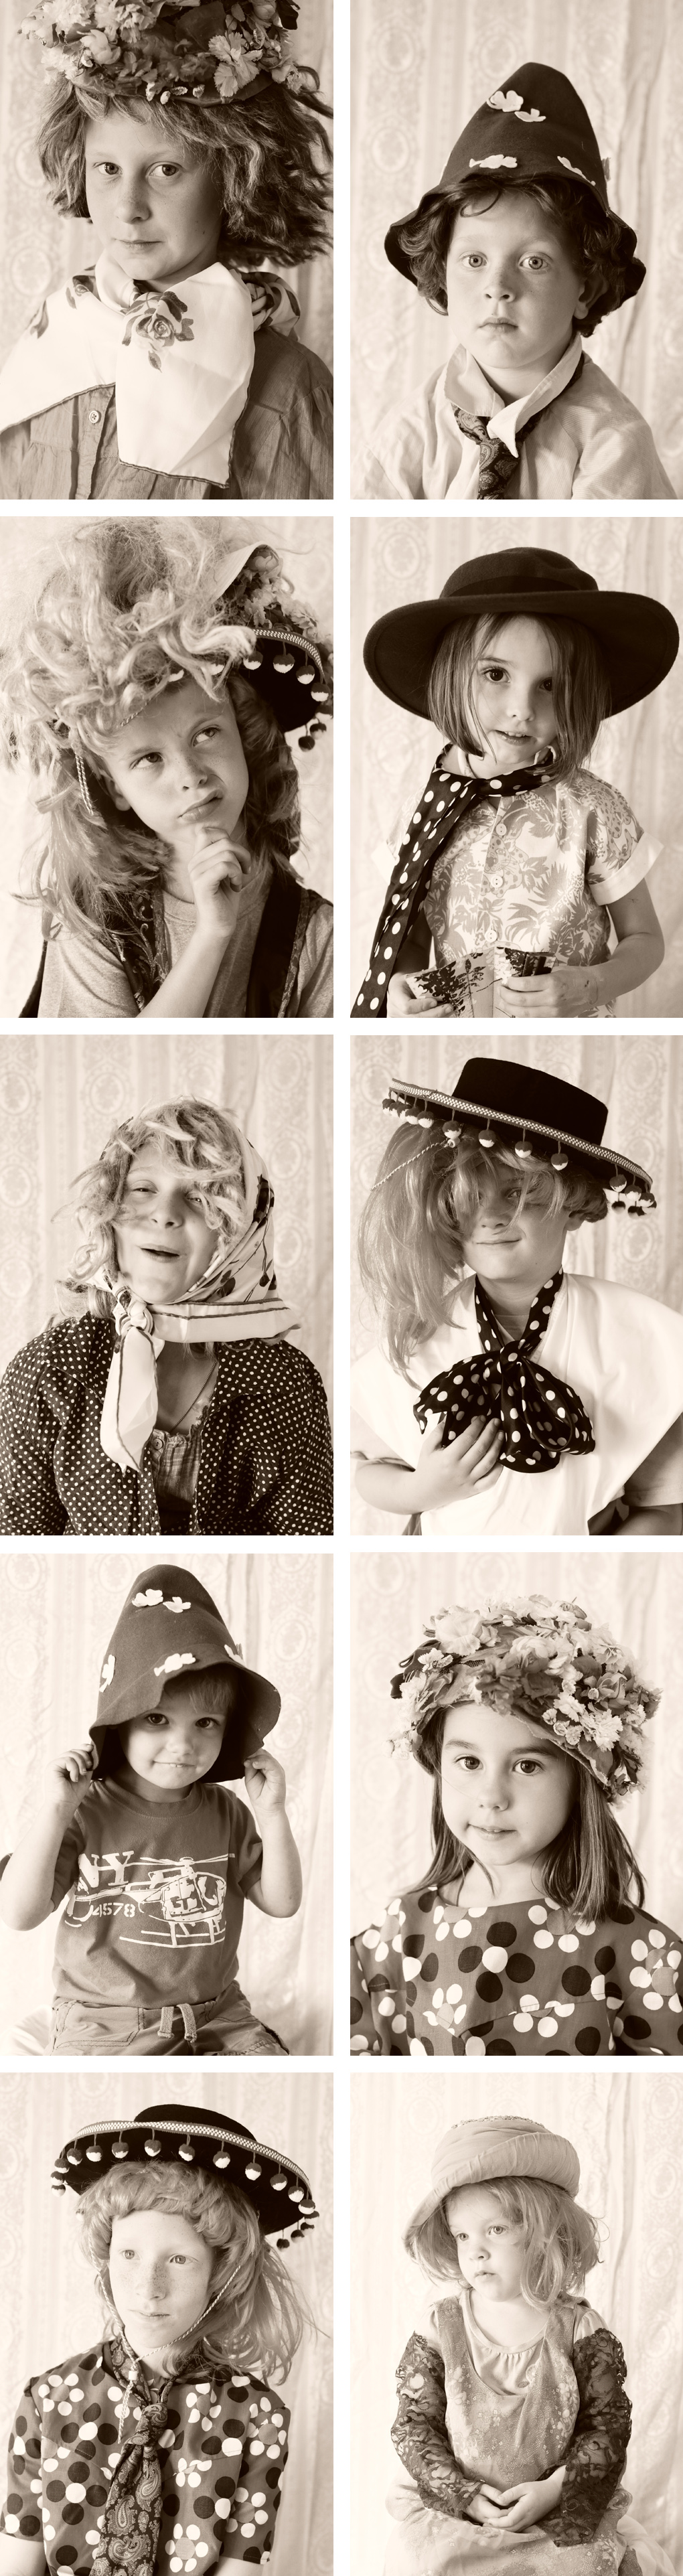 kid's dress-up photo-booth